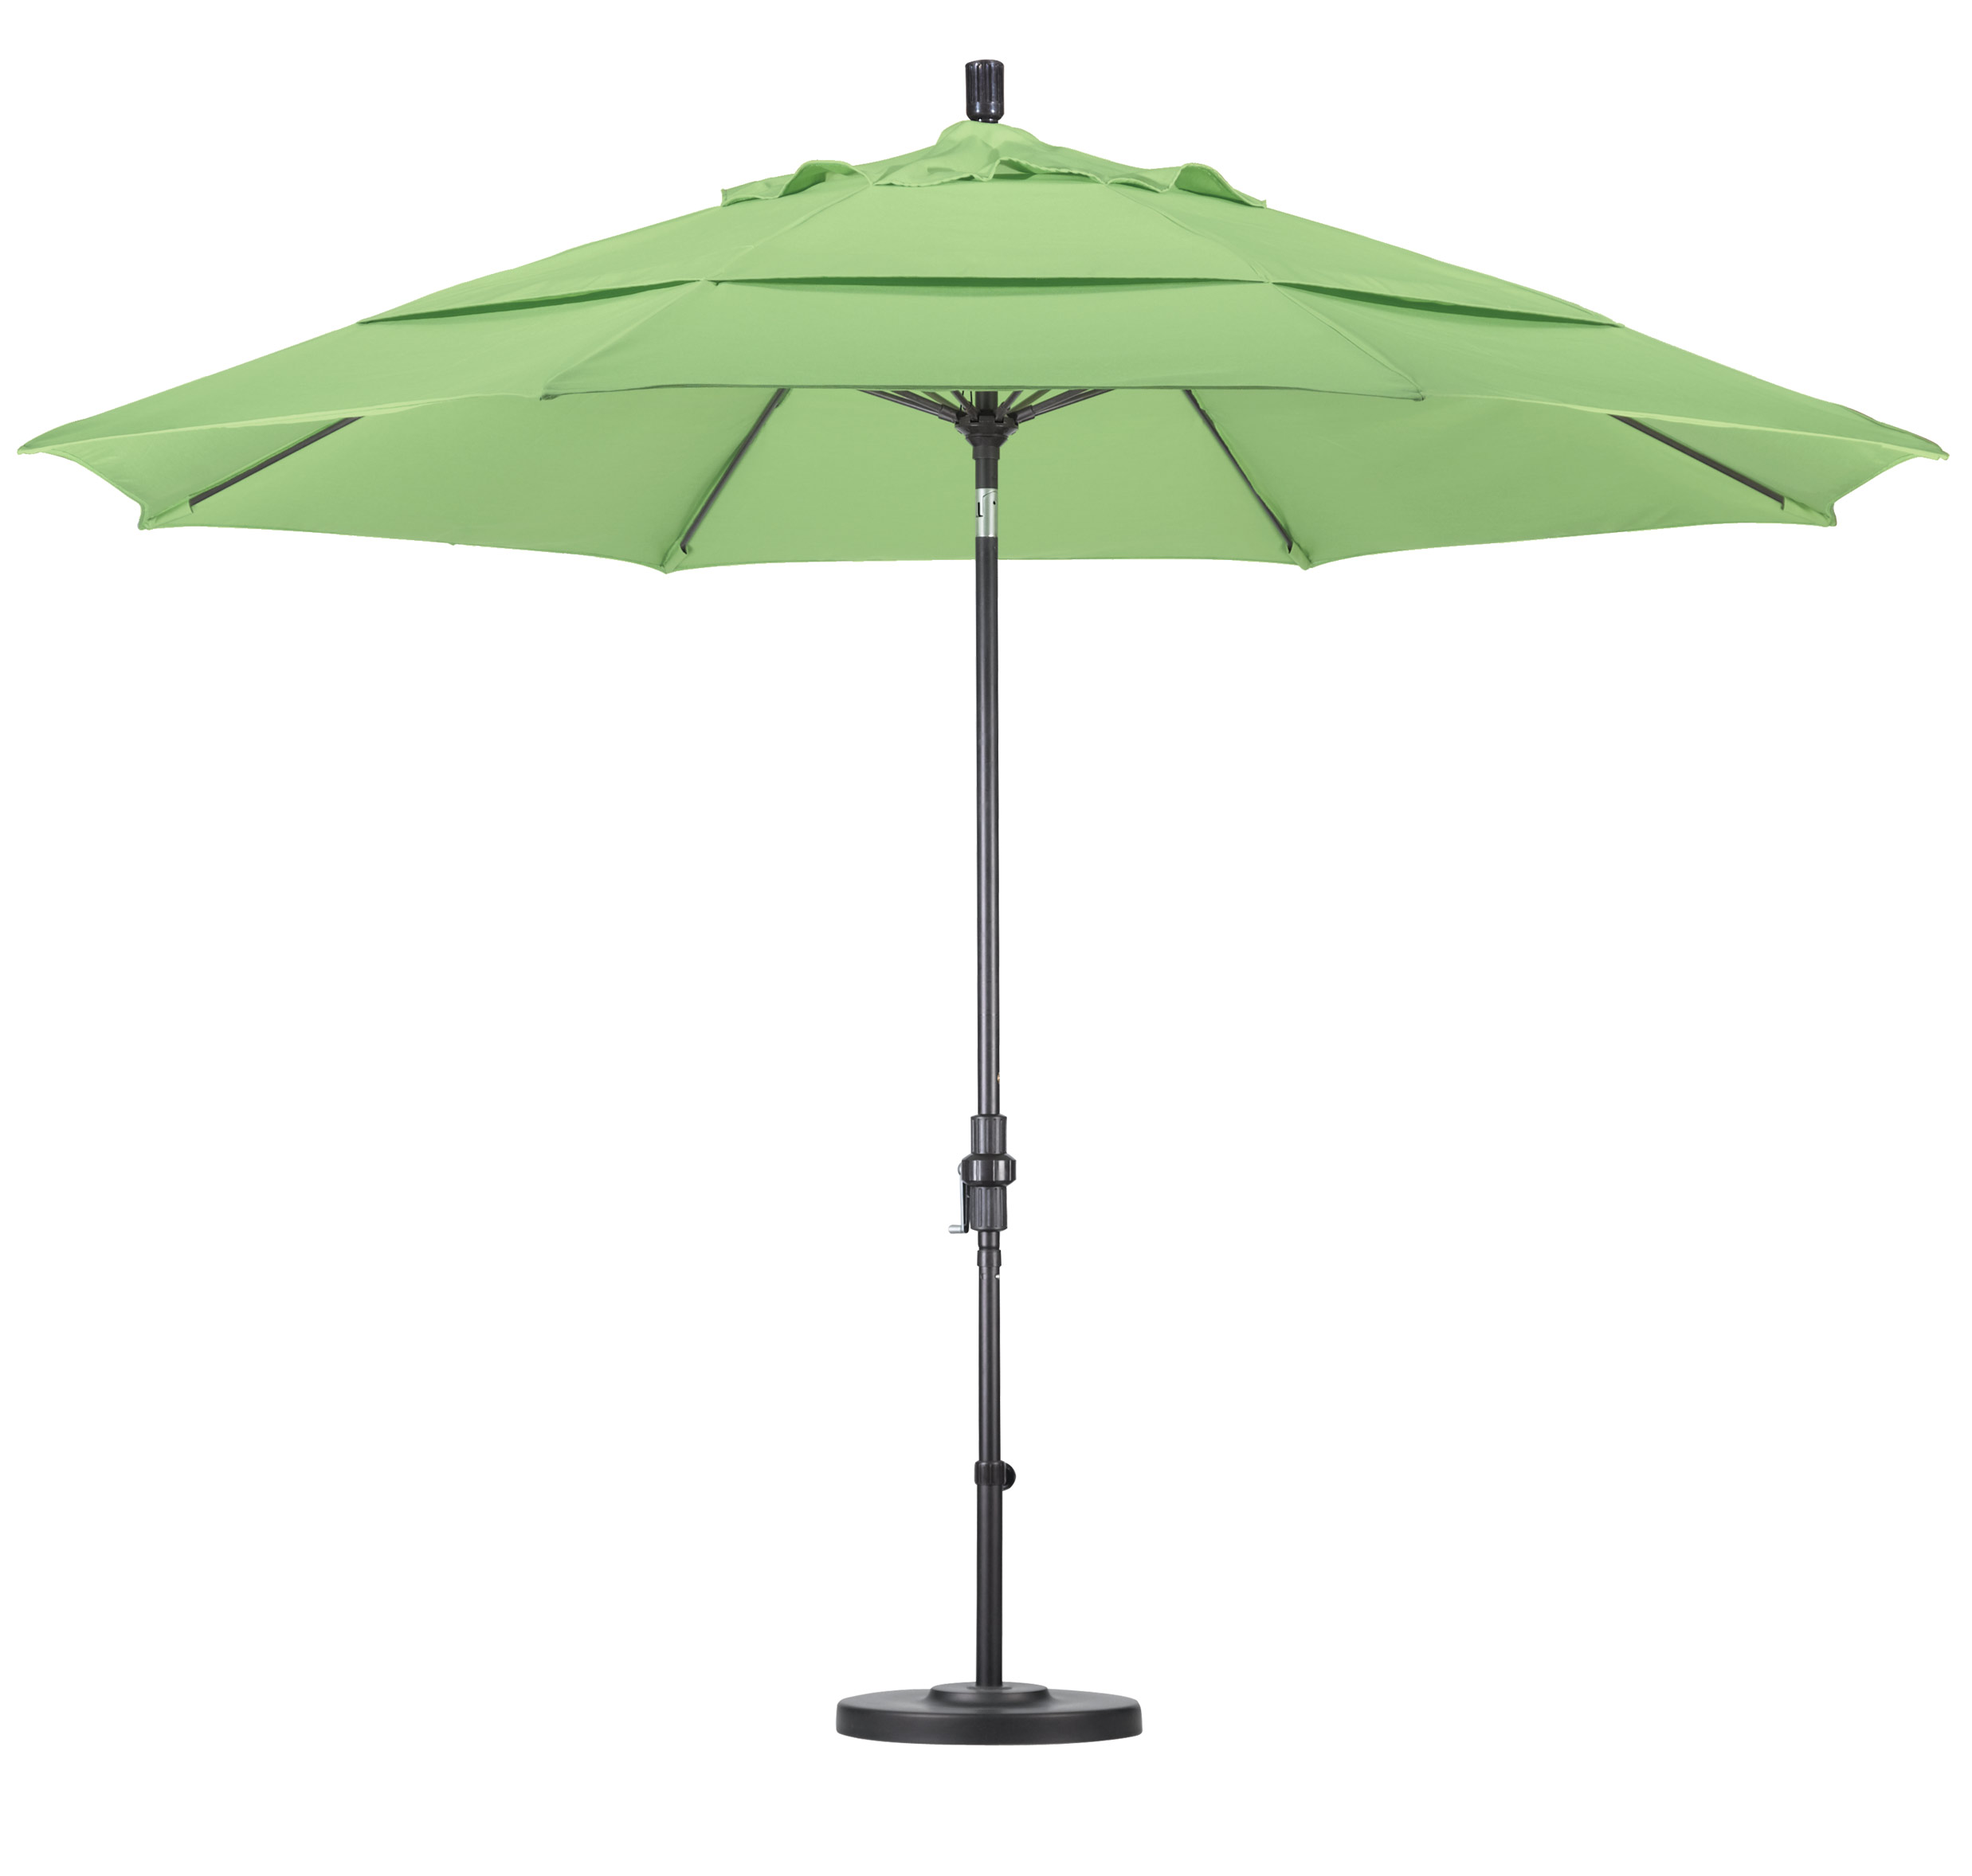 Lawn umbrella replacement parts bing images for Balcony umbrella